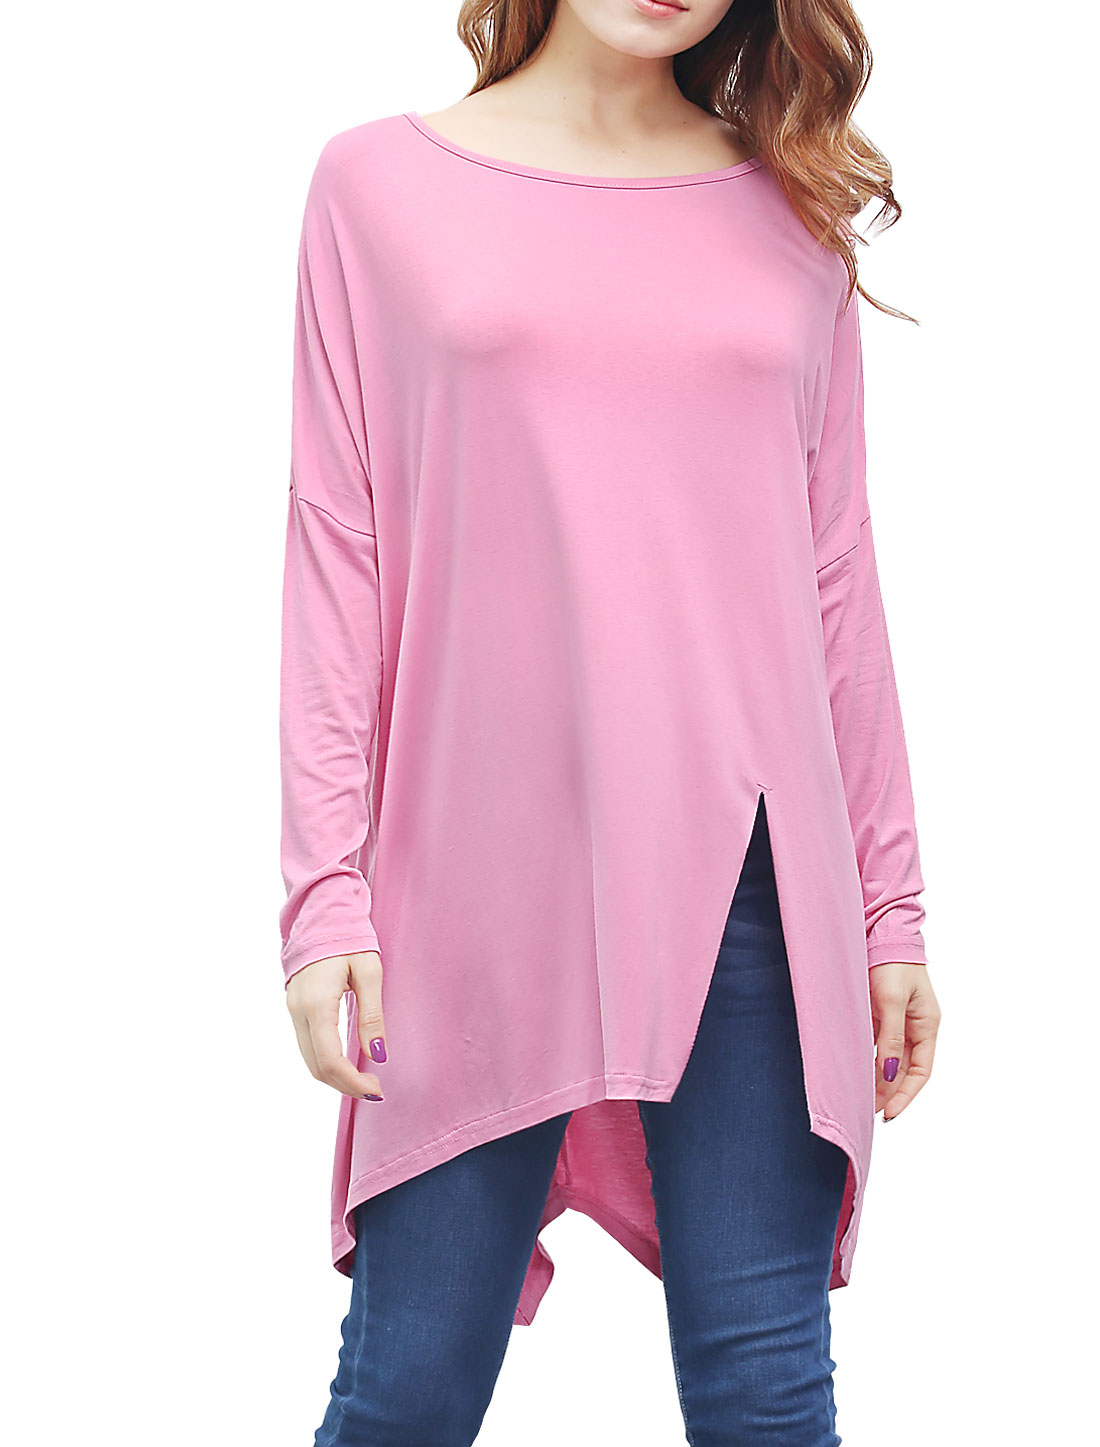 Women Batwing Sleeves Front Slit Oversized Tunic Top Pink S